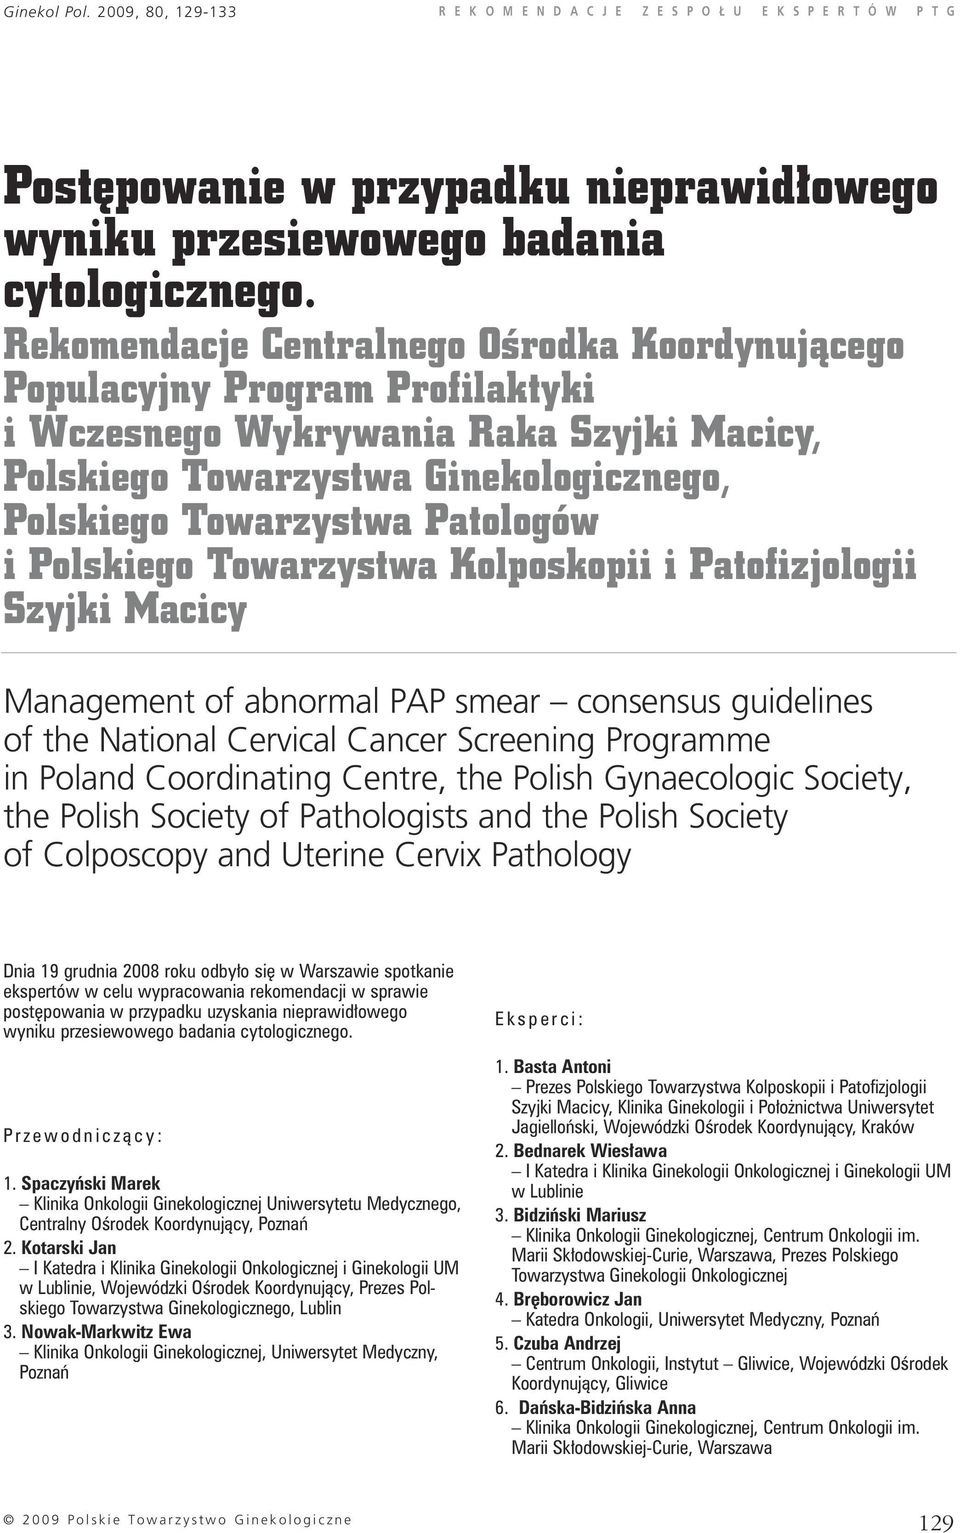 Polskiego Towarzystwa Kolposkopii i Patofizjologii Szyjki Macicy Management of abnormal PAP smear consensus guidelines of the National Cervical Cancer Screening Programme in Poland Coordinating